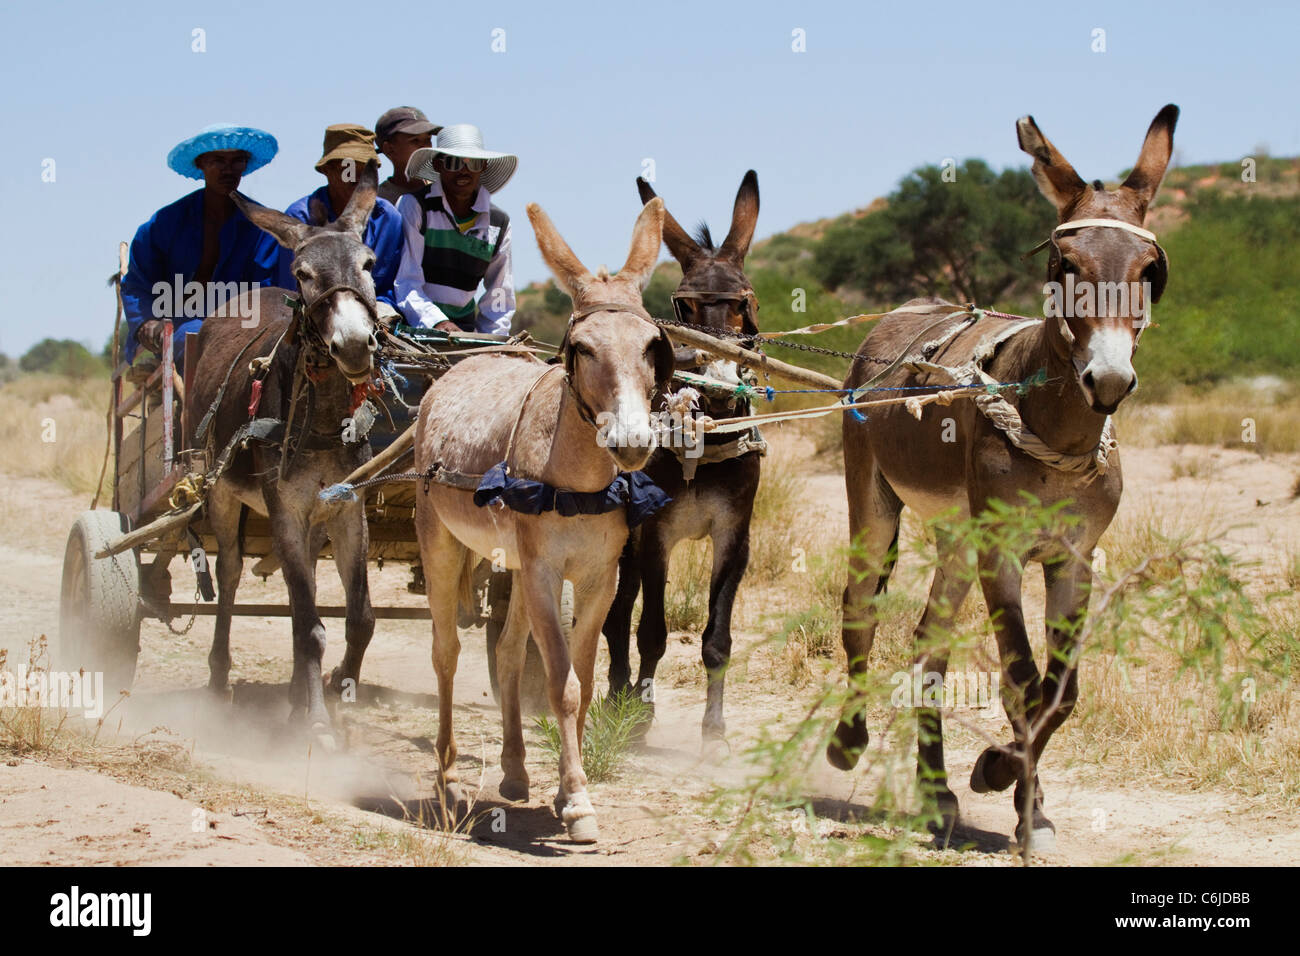 Donkey cart on a dirt track in the Kalahari - Stock Image